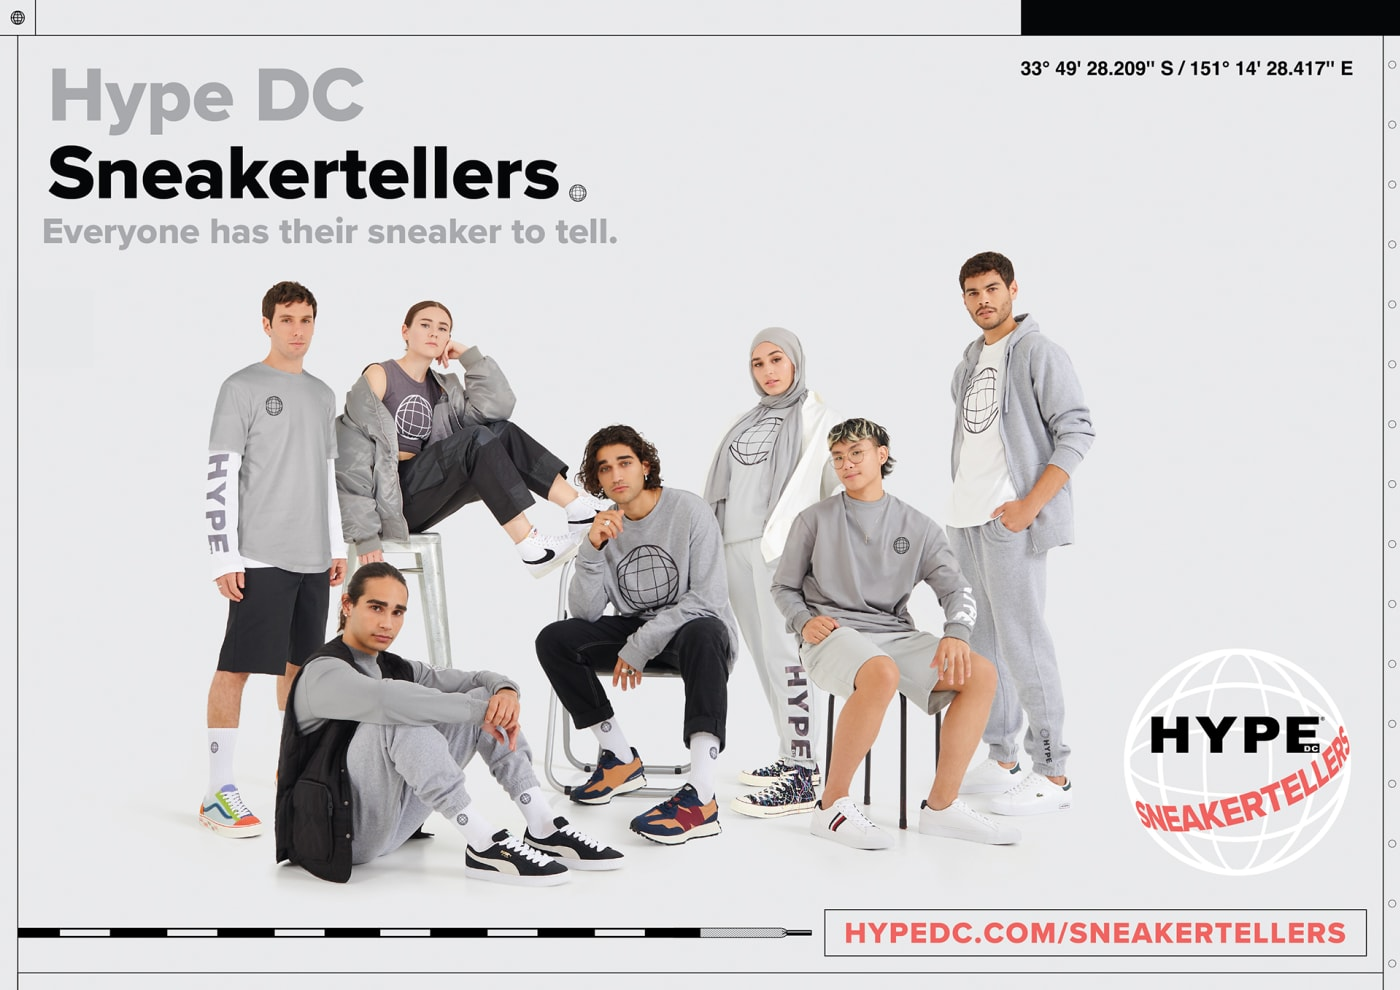 Hype DC Sneakertellers campaign